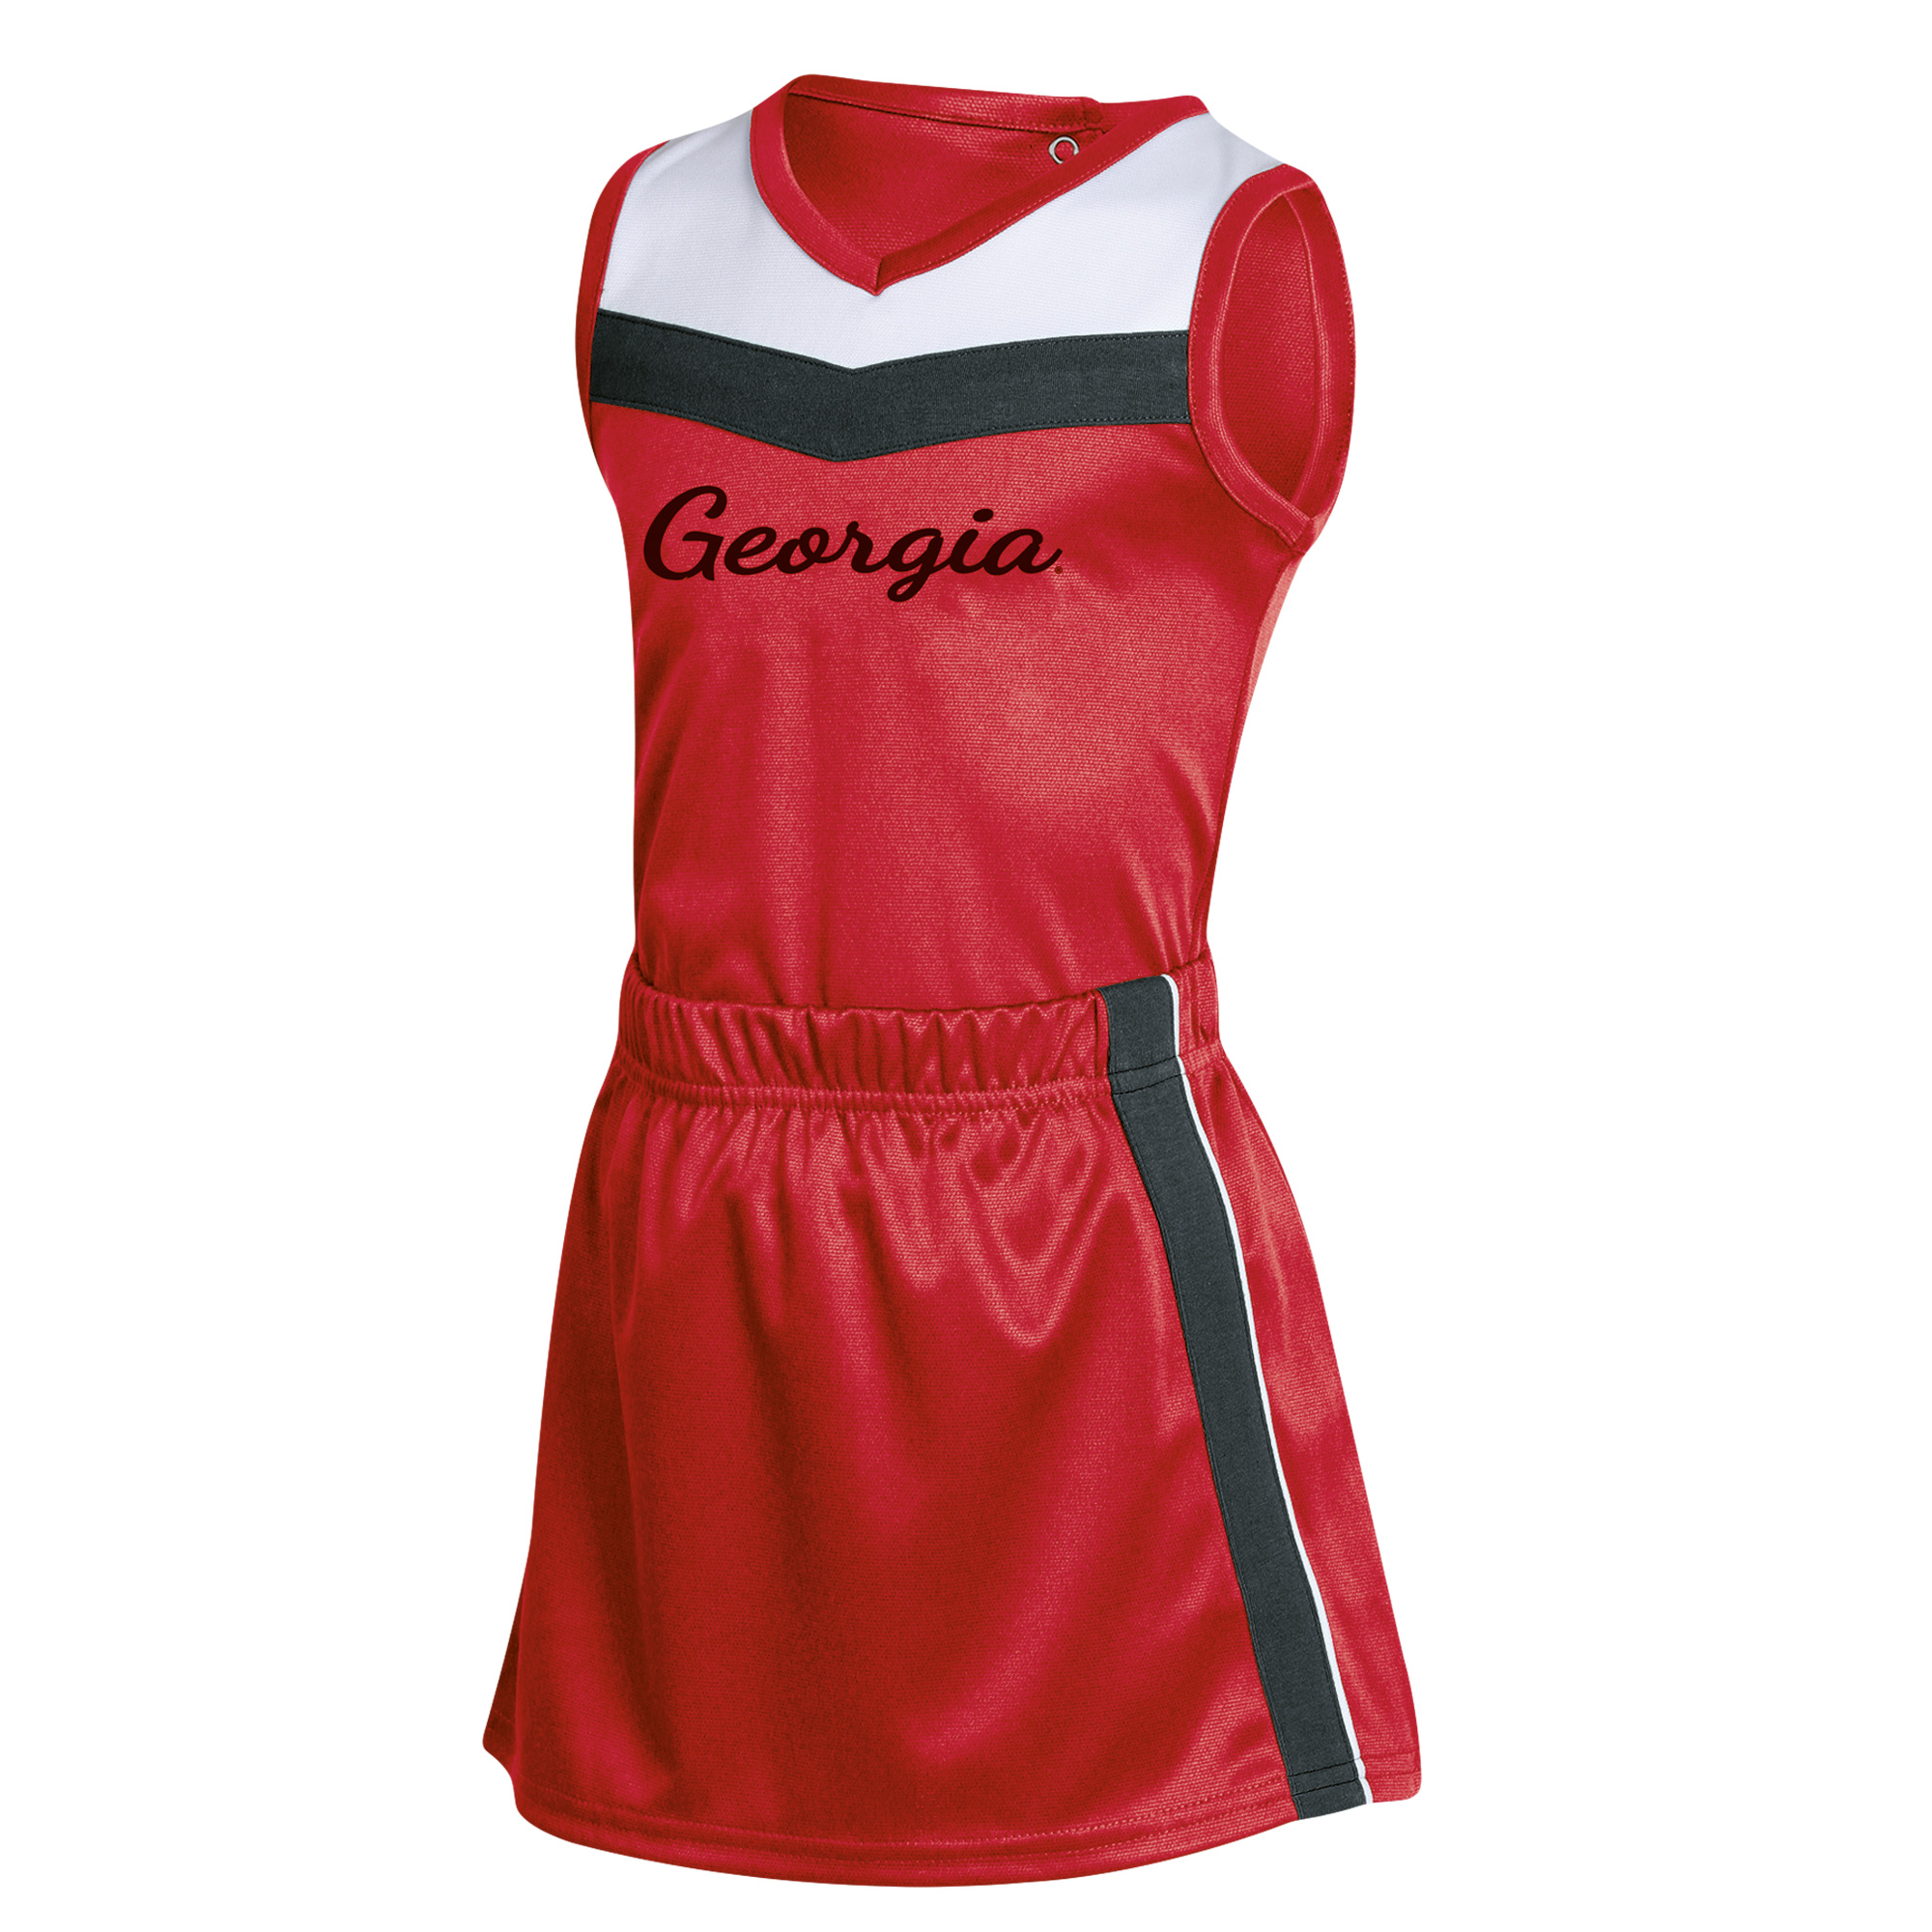 Girls Toddler Russell Red Georgia Bulldogs 3-Piece Cheer Set